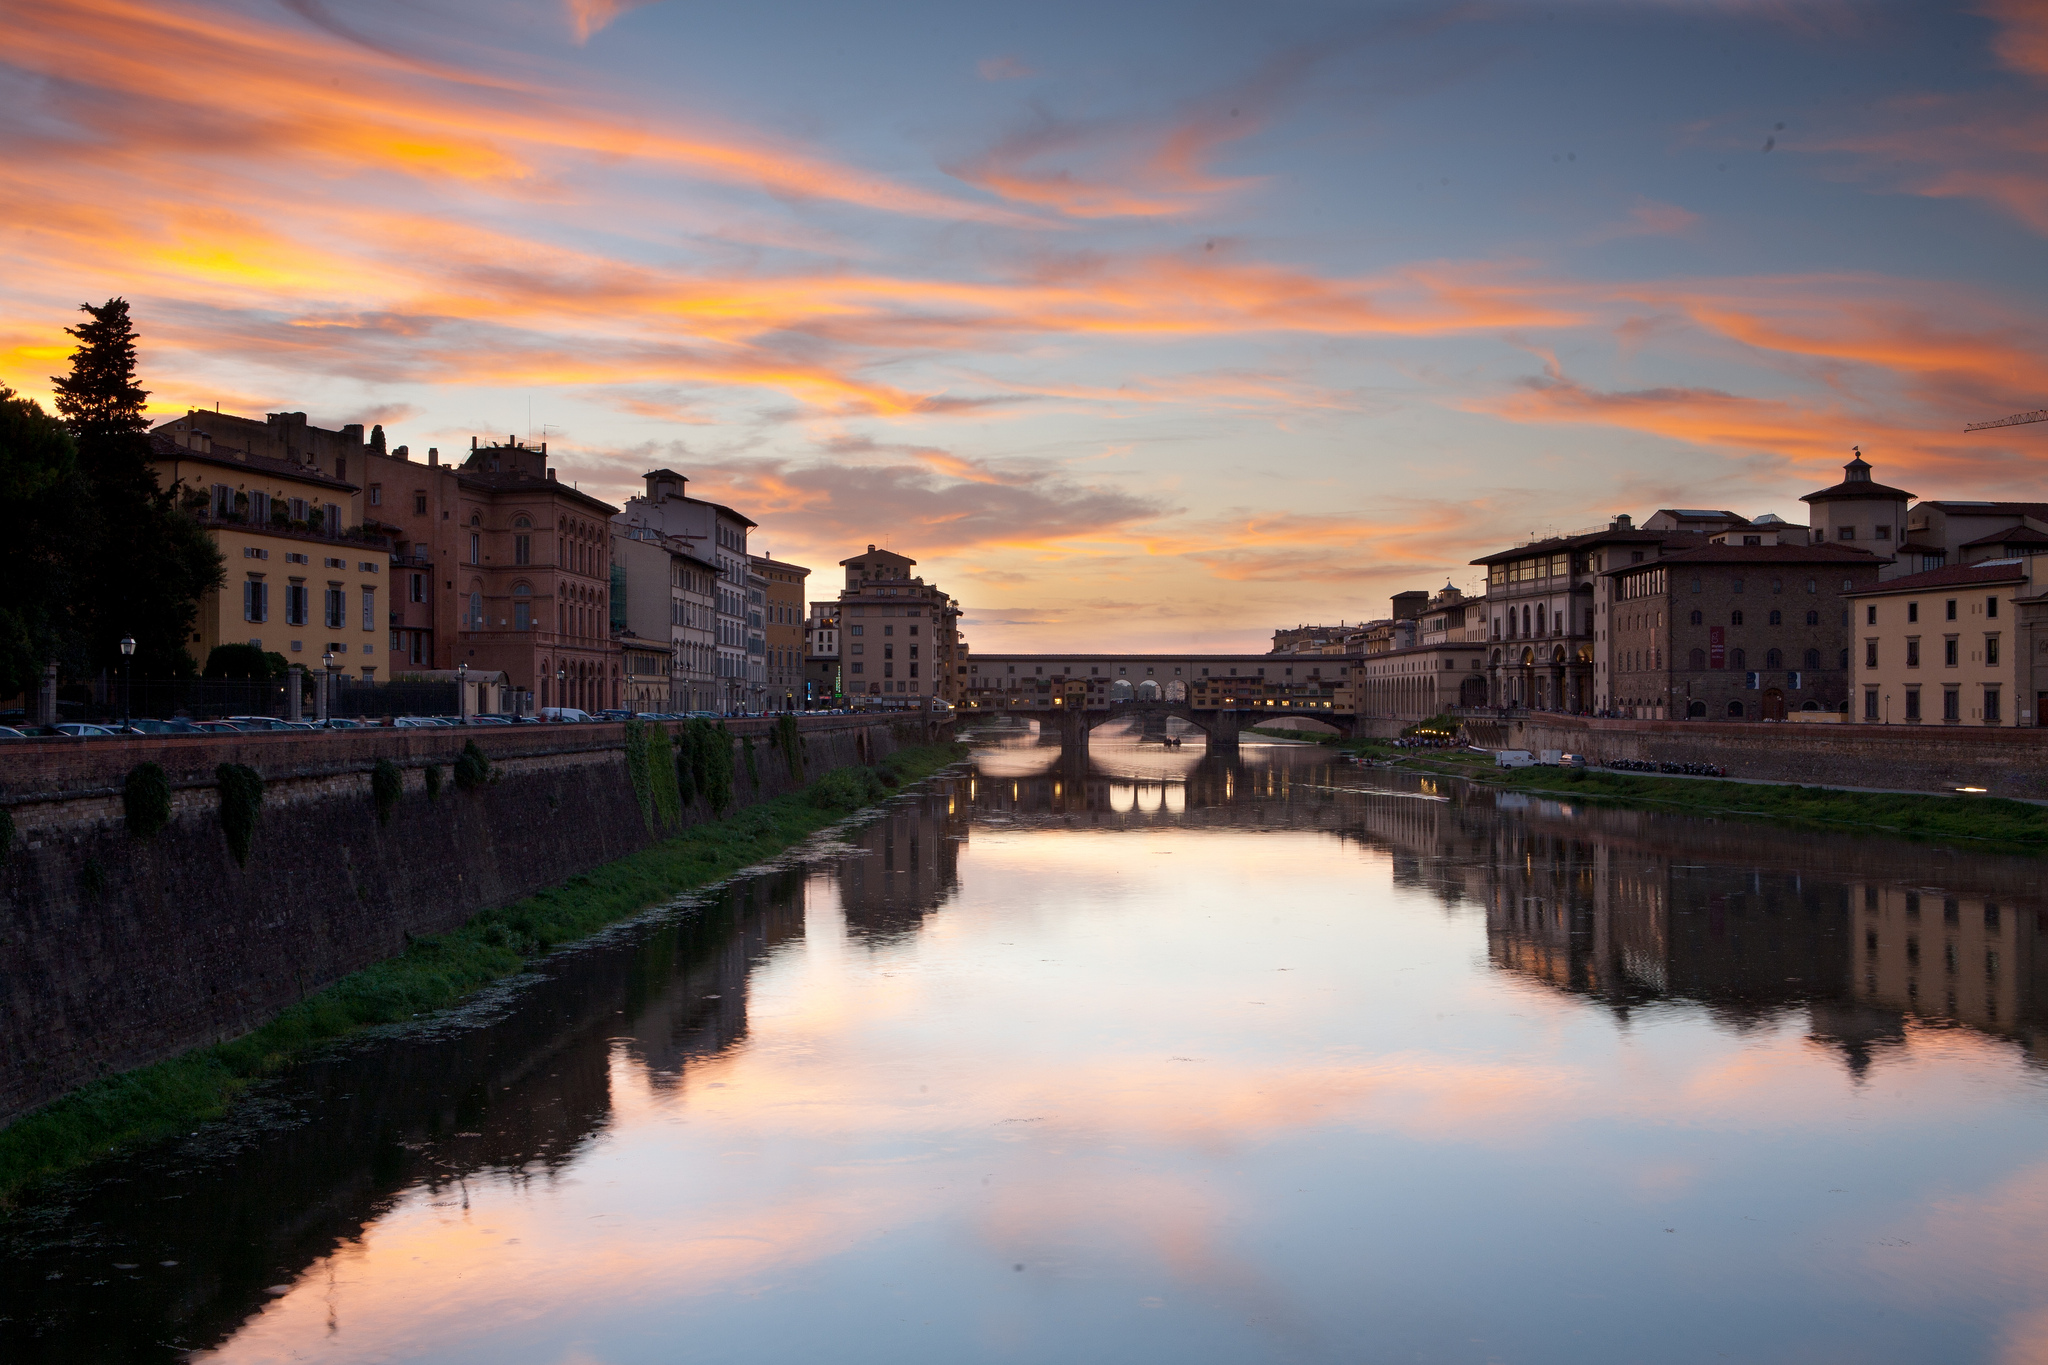 Arno_river_sunset,_Florence,_Italy